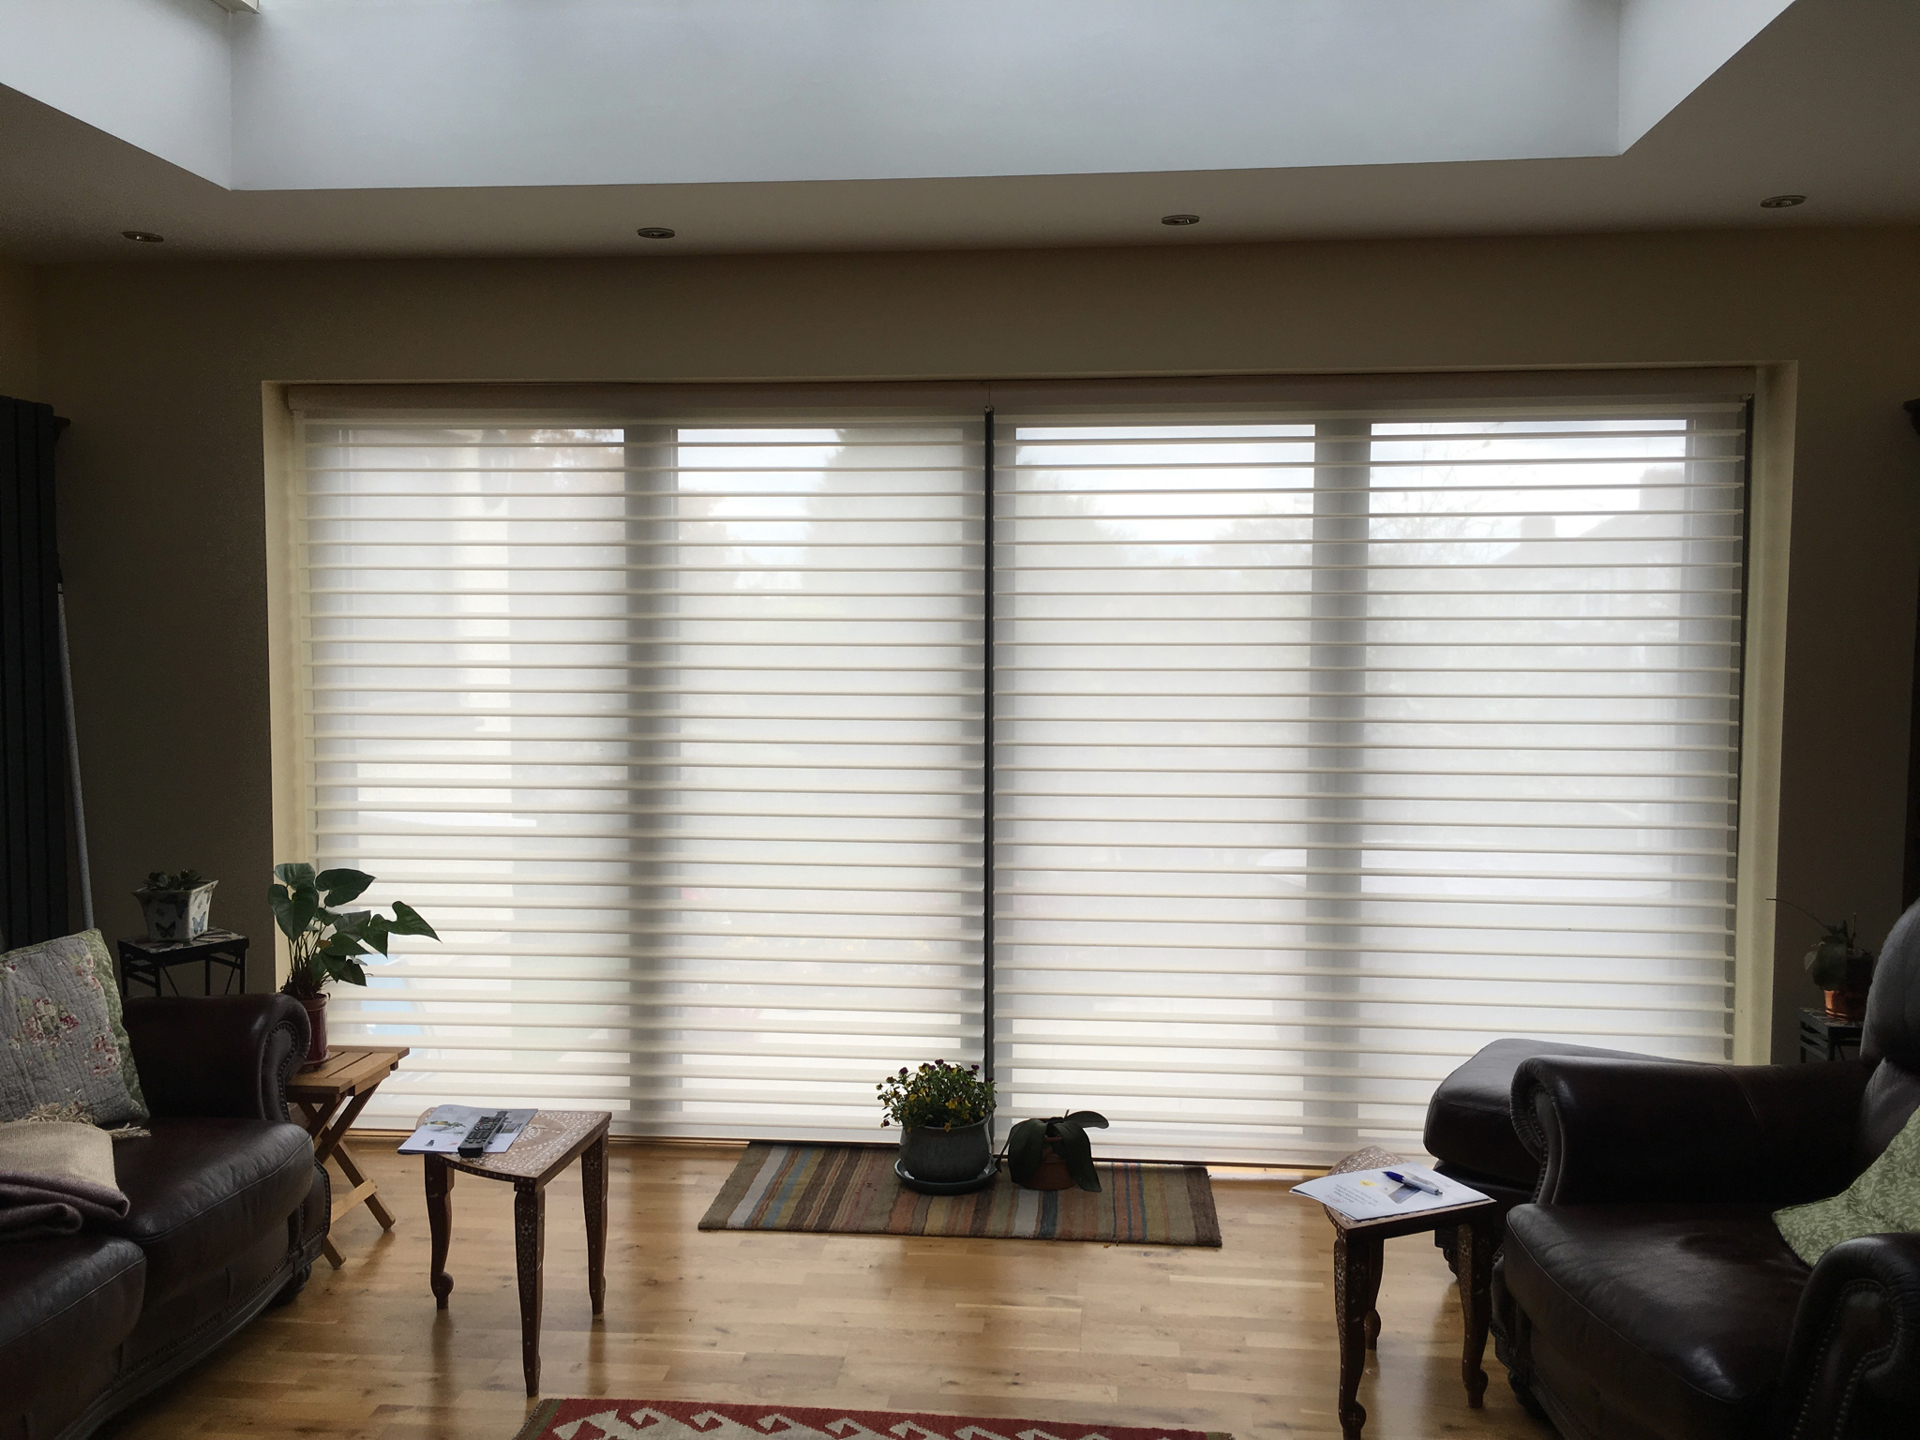 sihlouette-pirouette-living-room-blinds